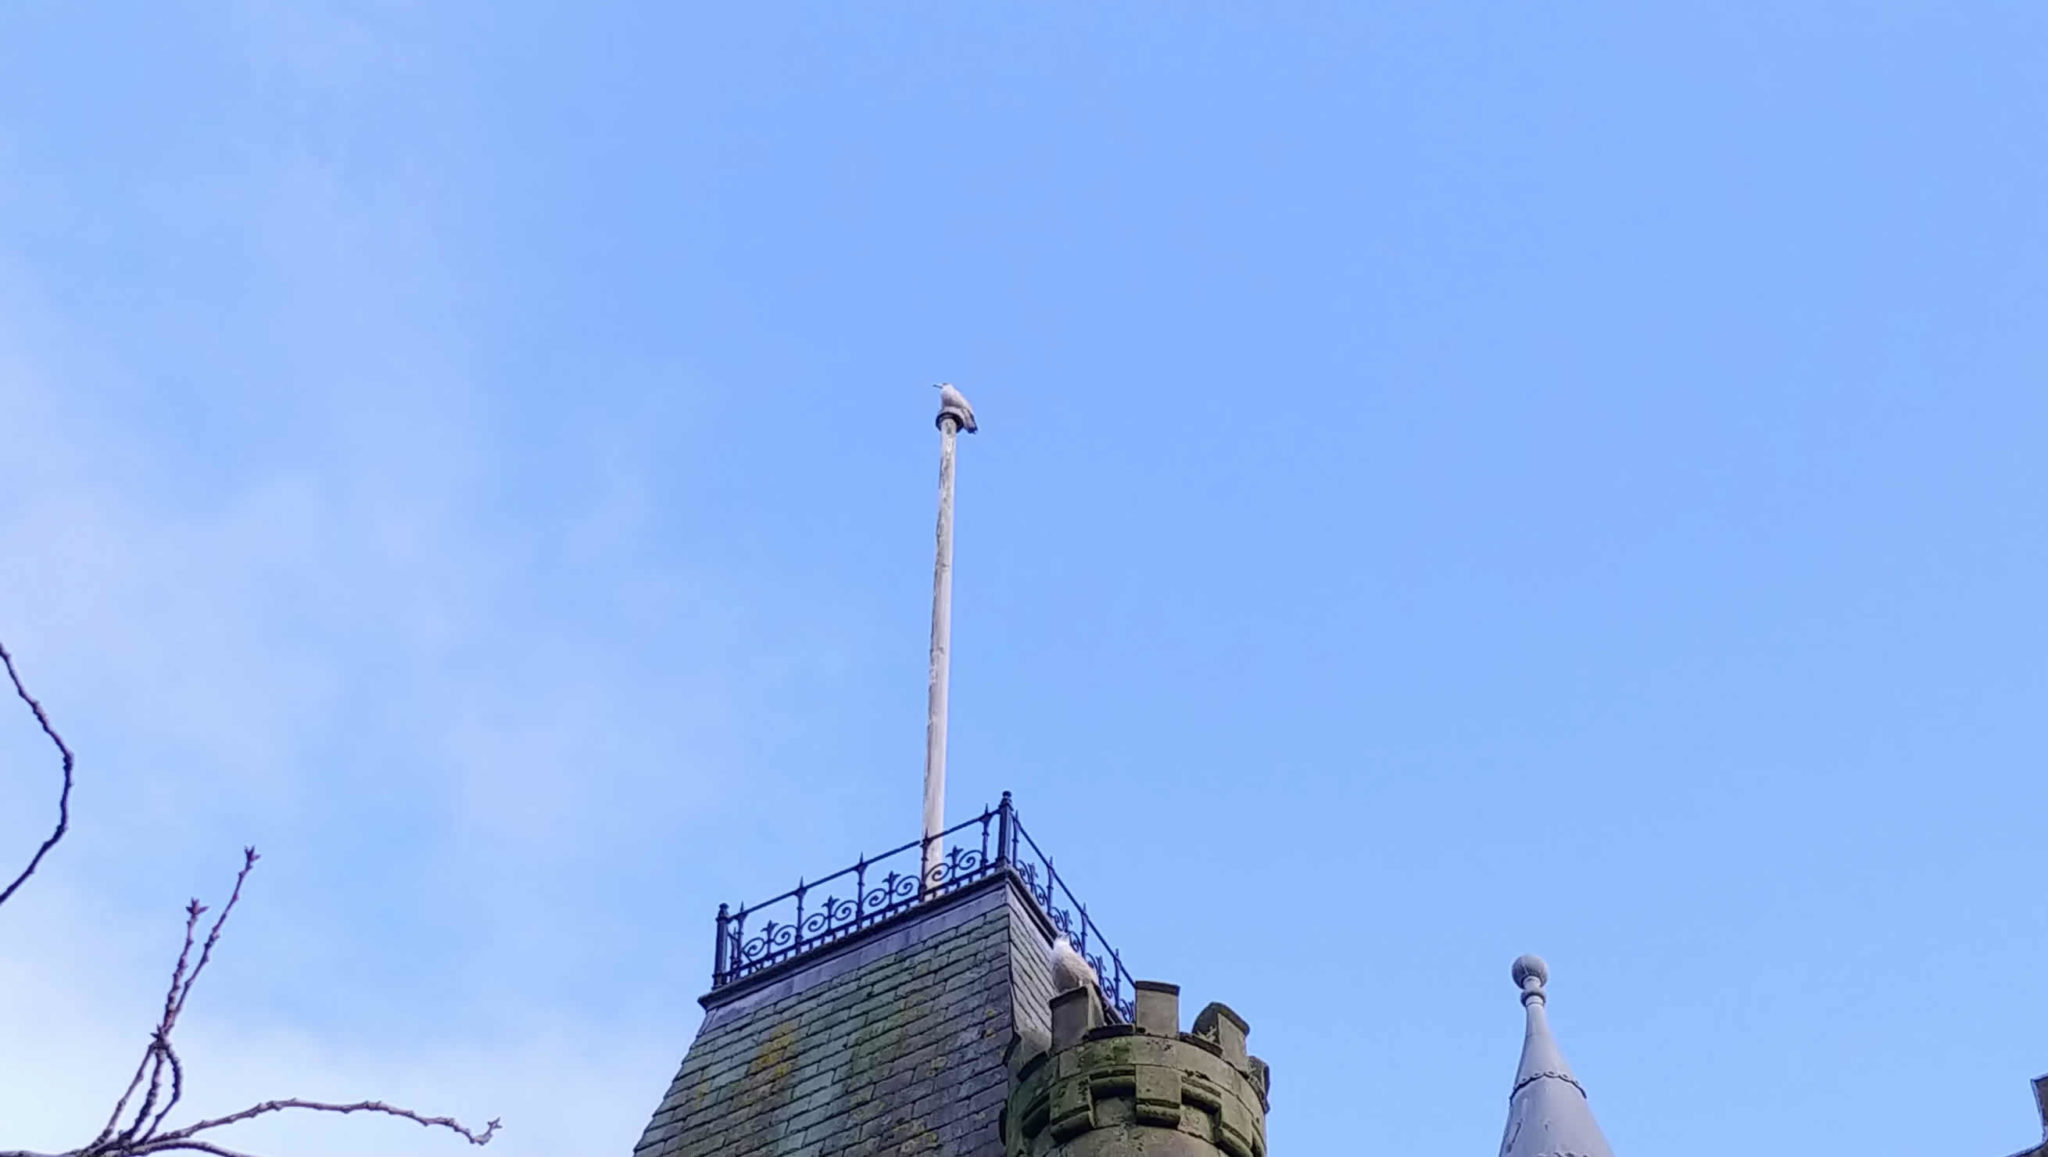 A seagull perched on the flagpole on top of the Victoria Halls